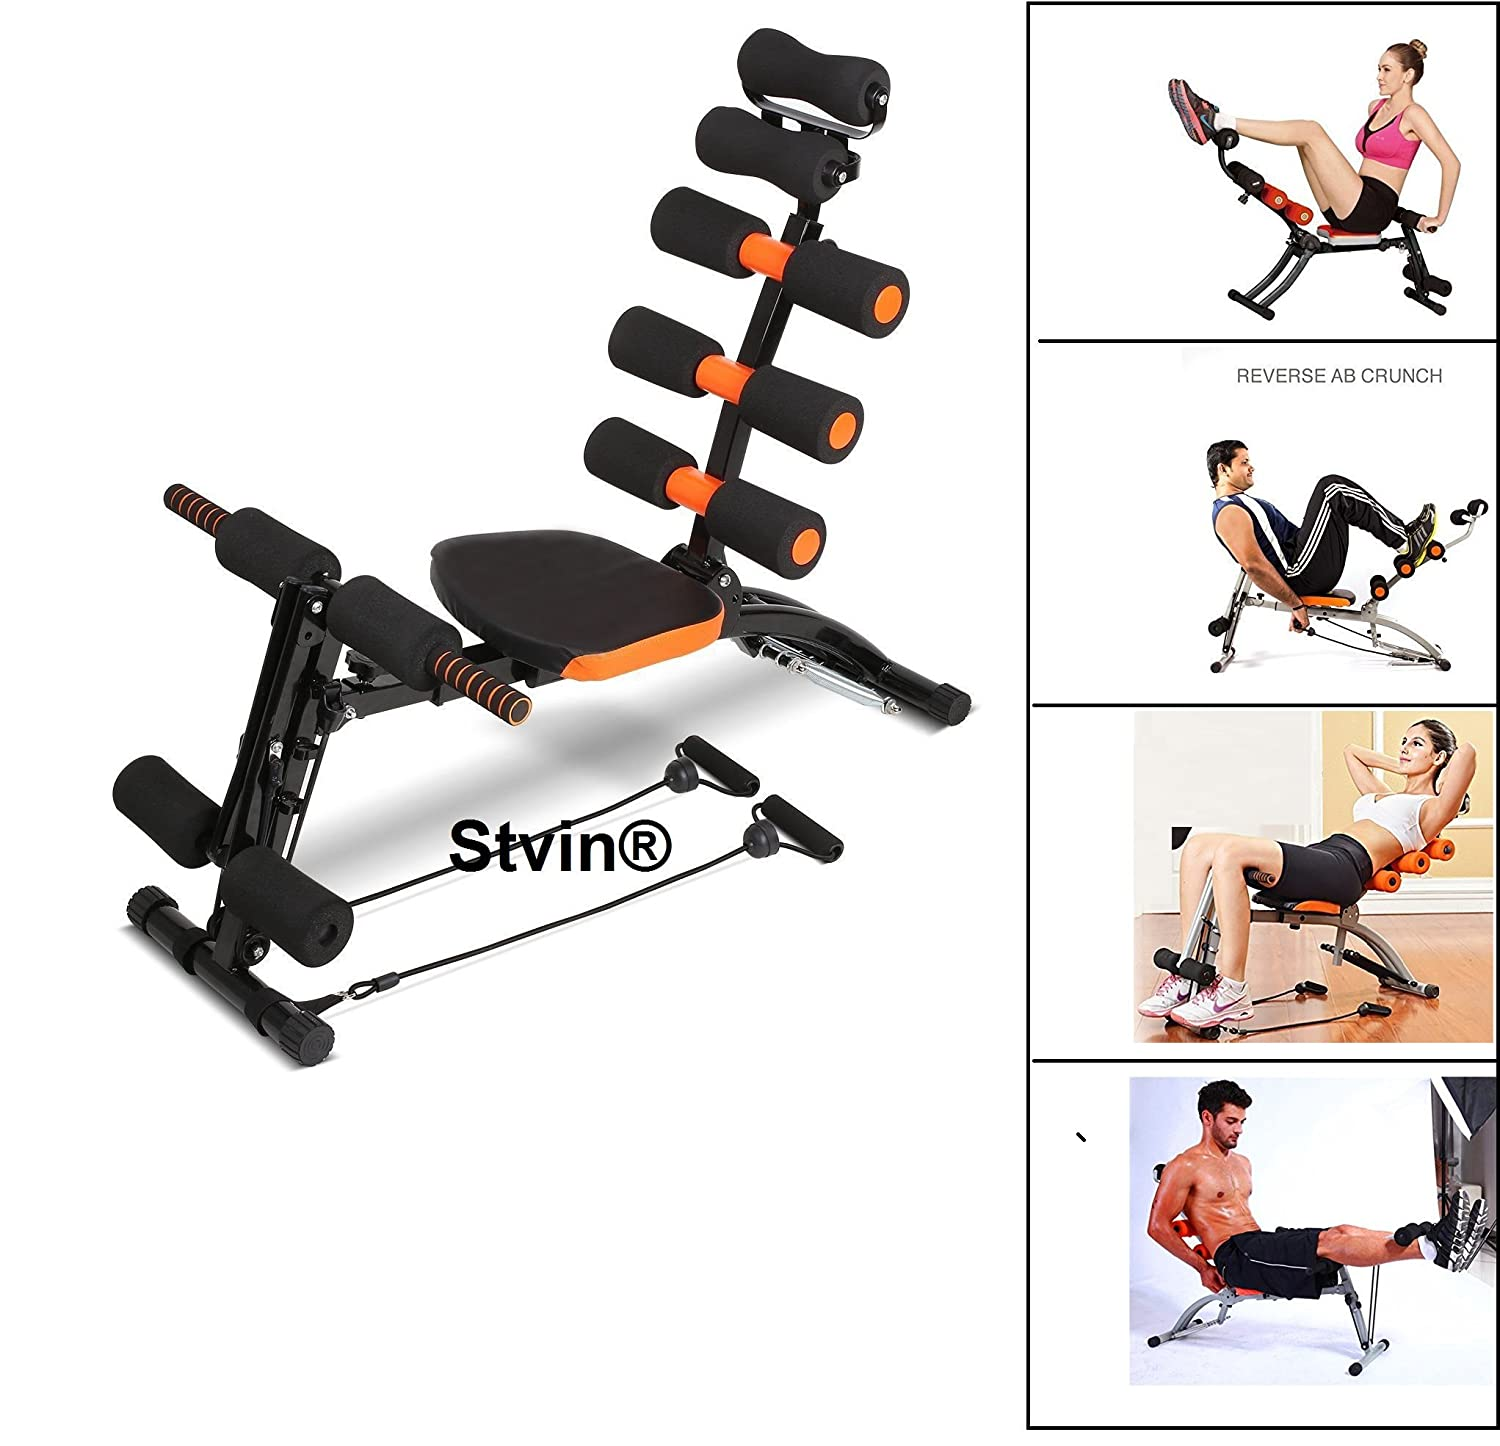 Stvin six pack abs exerciser / six pack machine 20 different mode for exercise and fitness